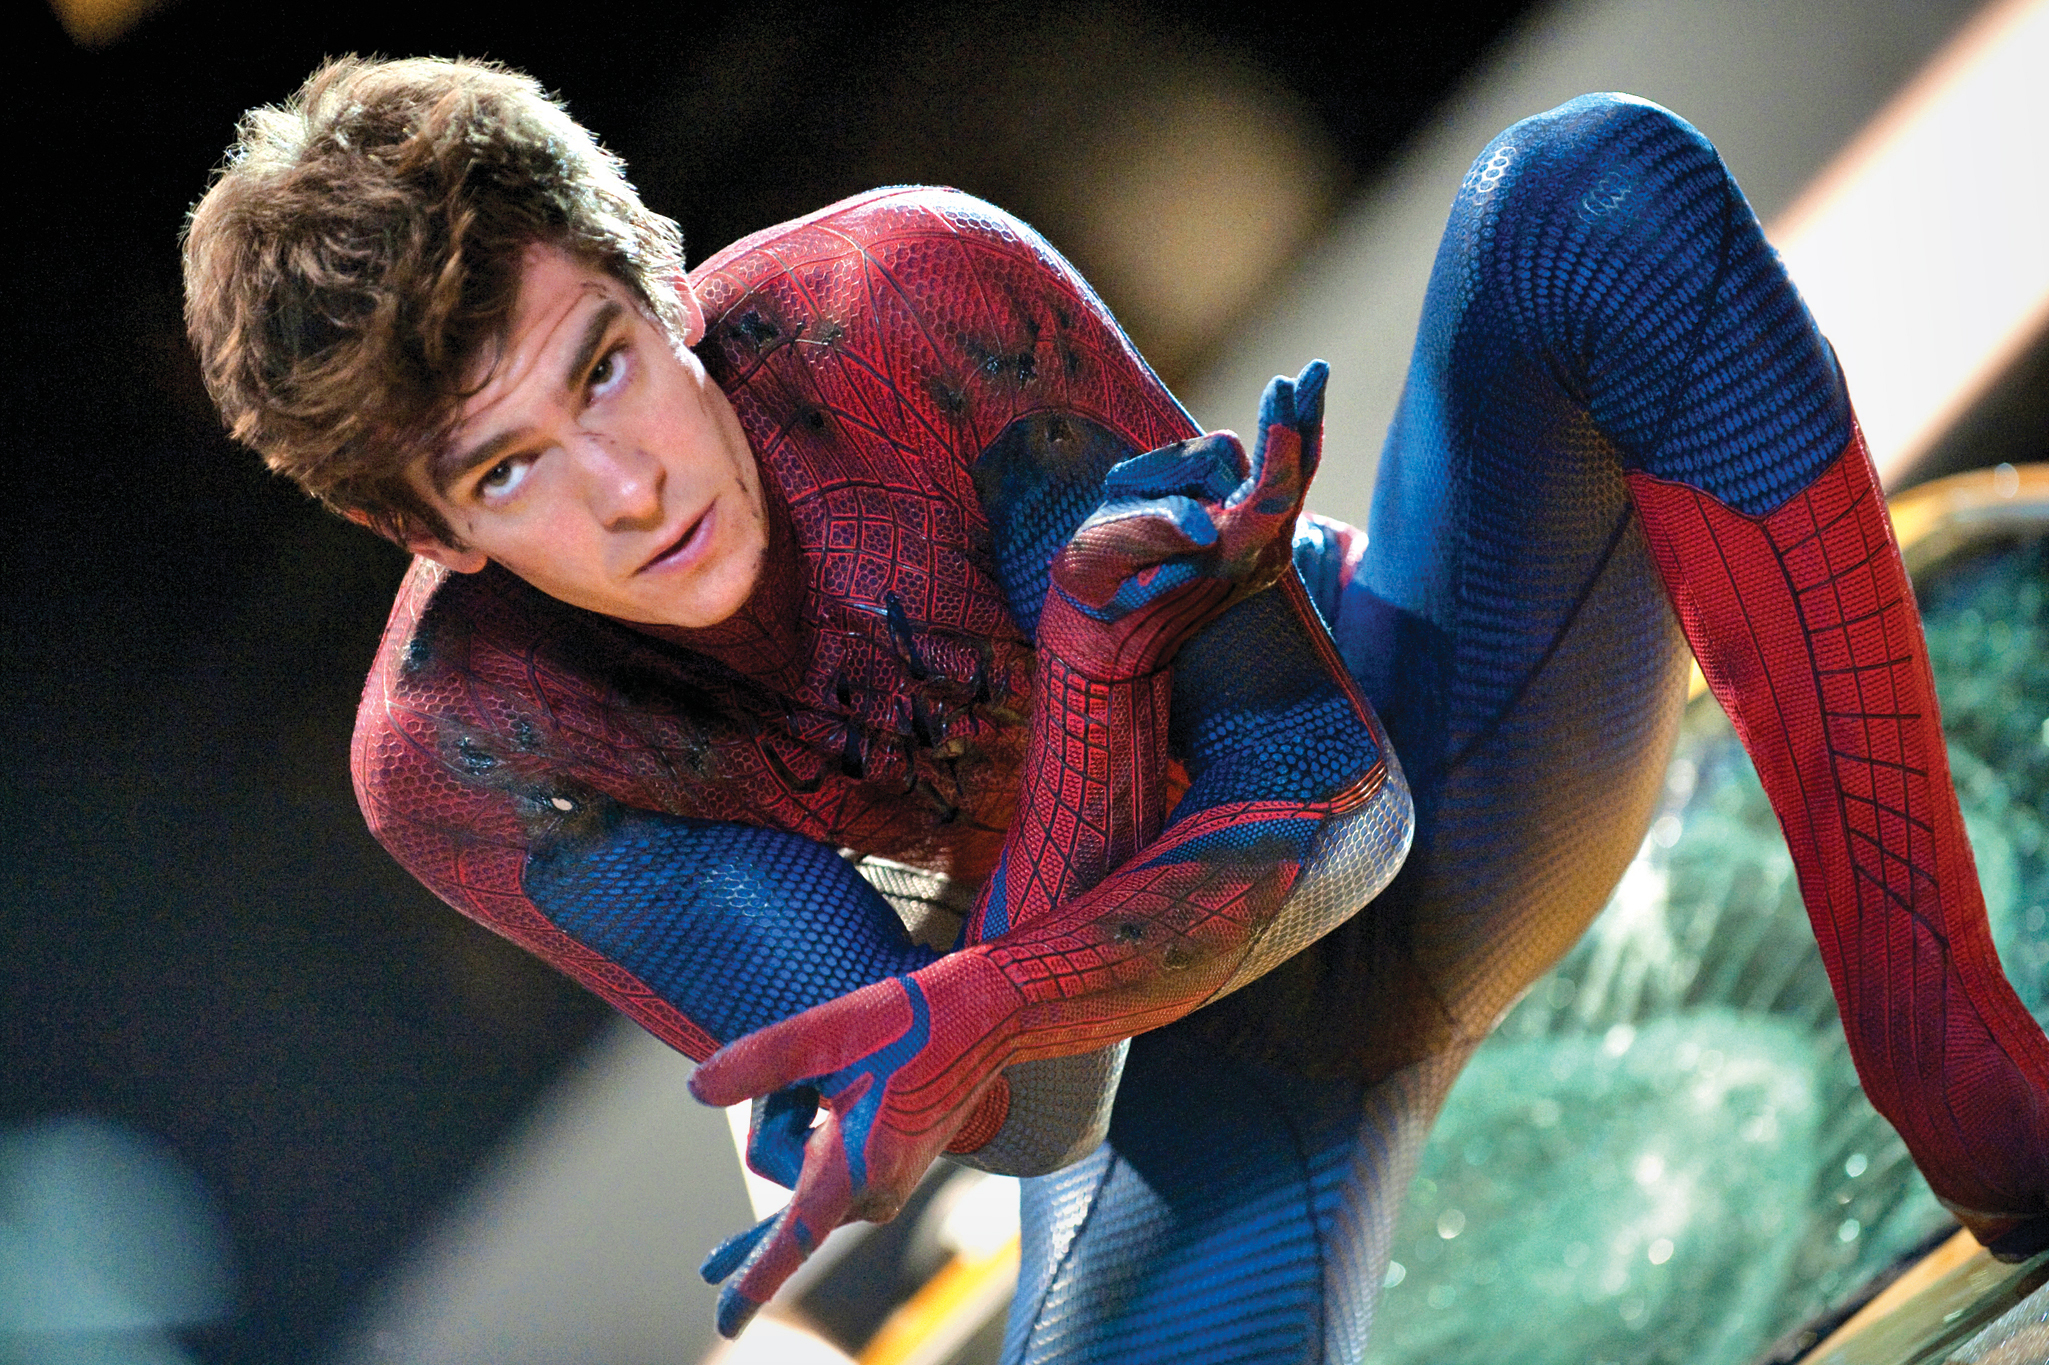 The Hot Seat: The Amazing Spider-Man's Andrew Garfield